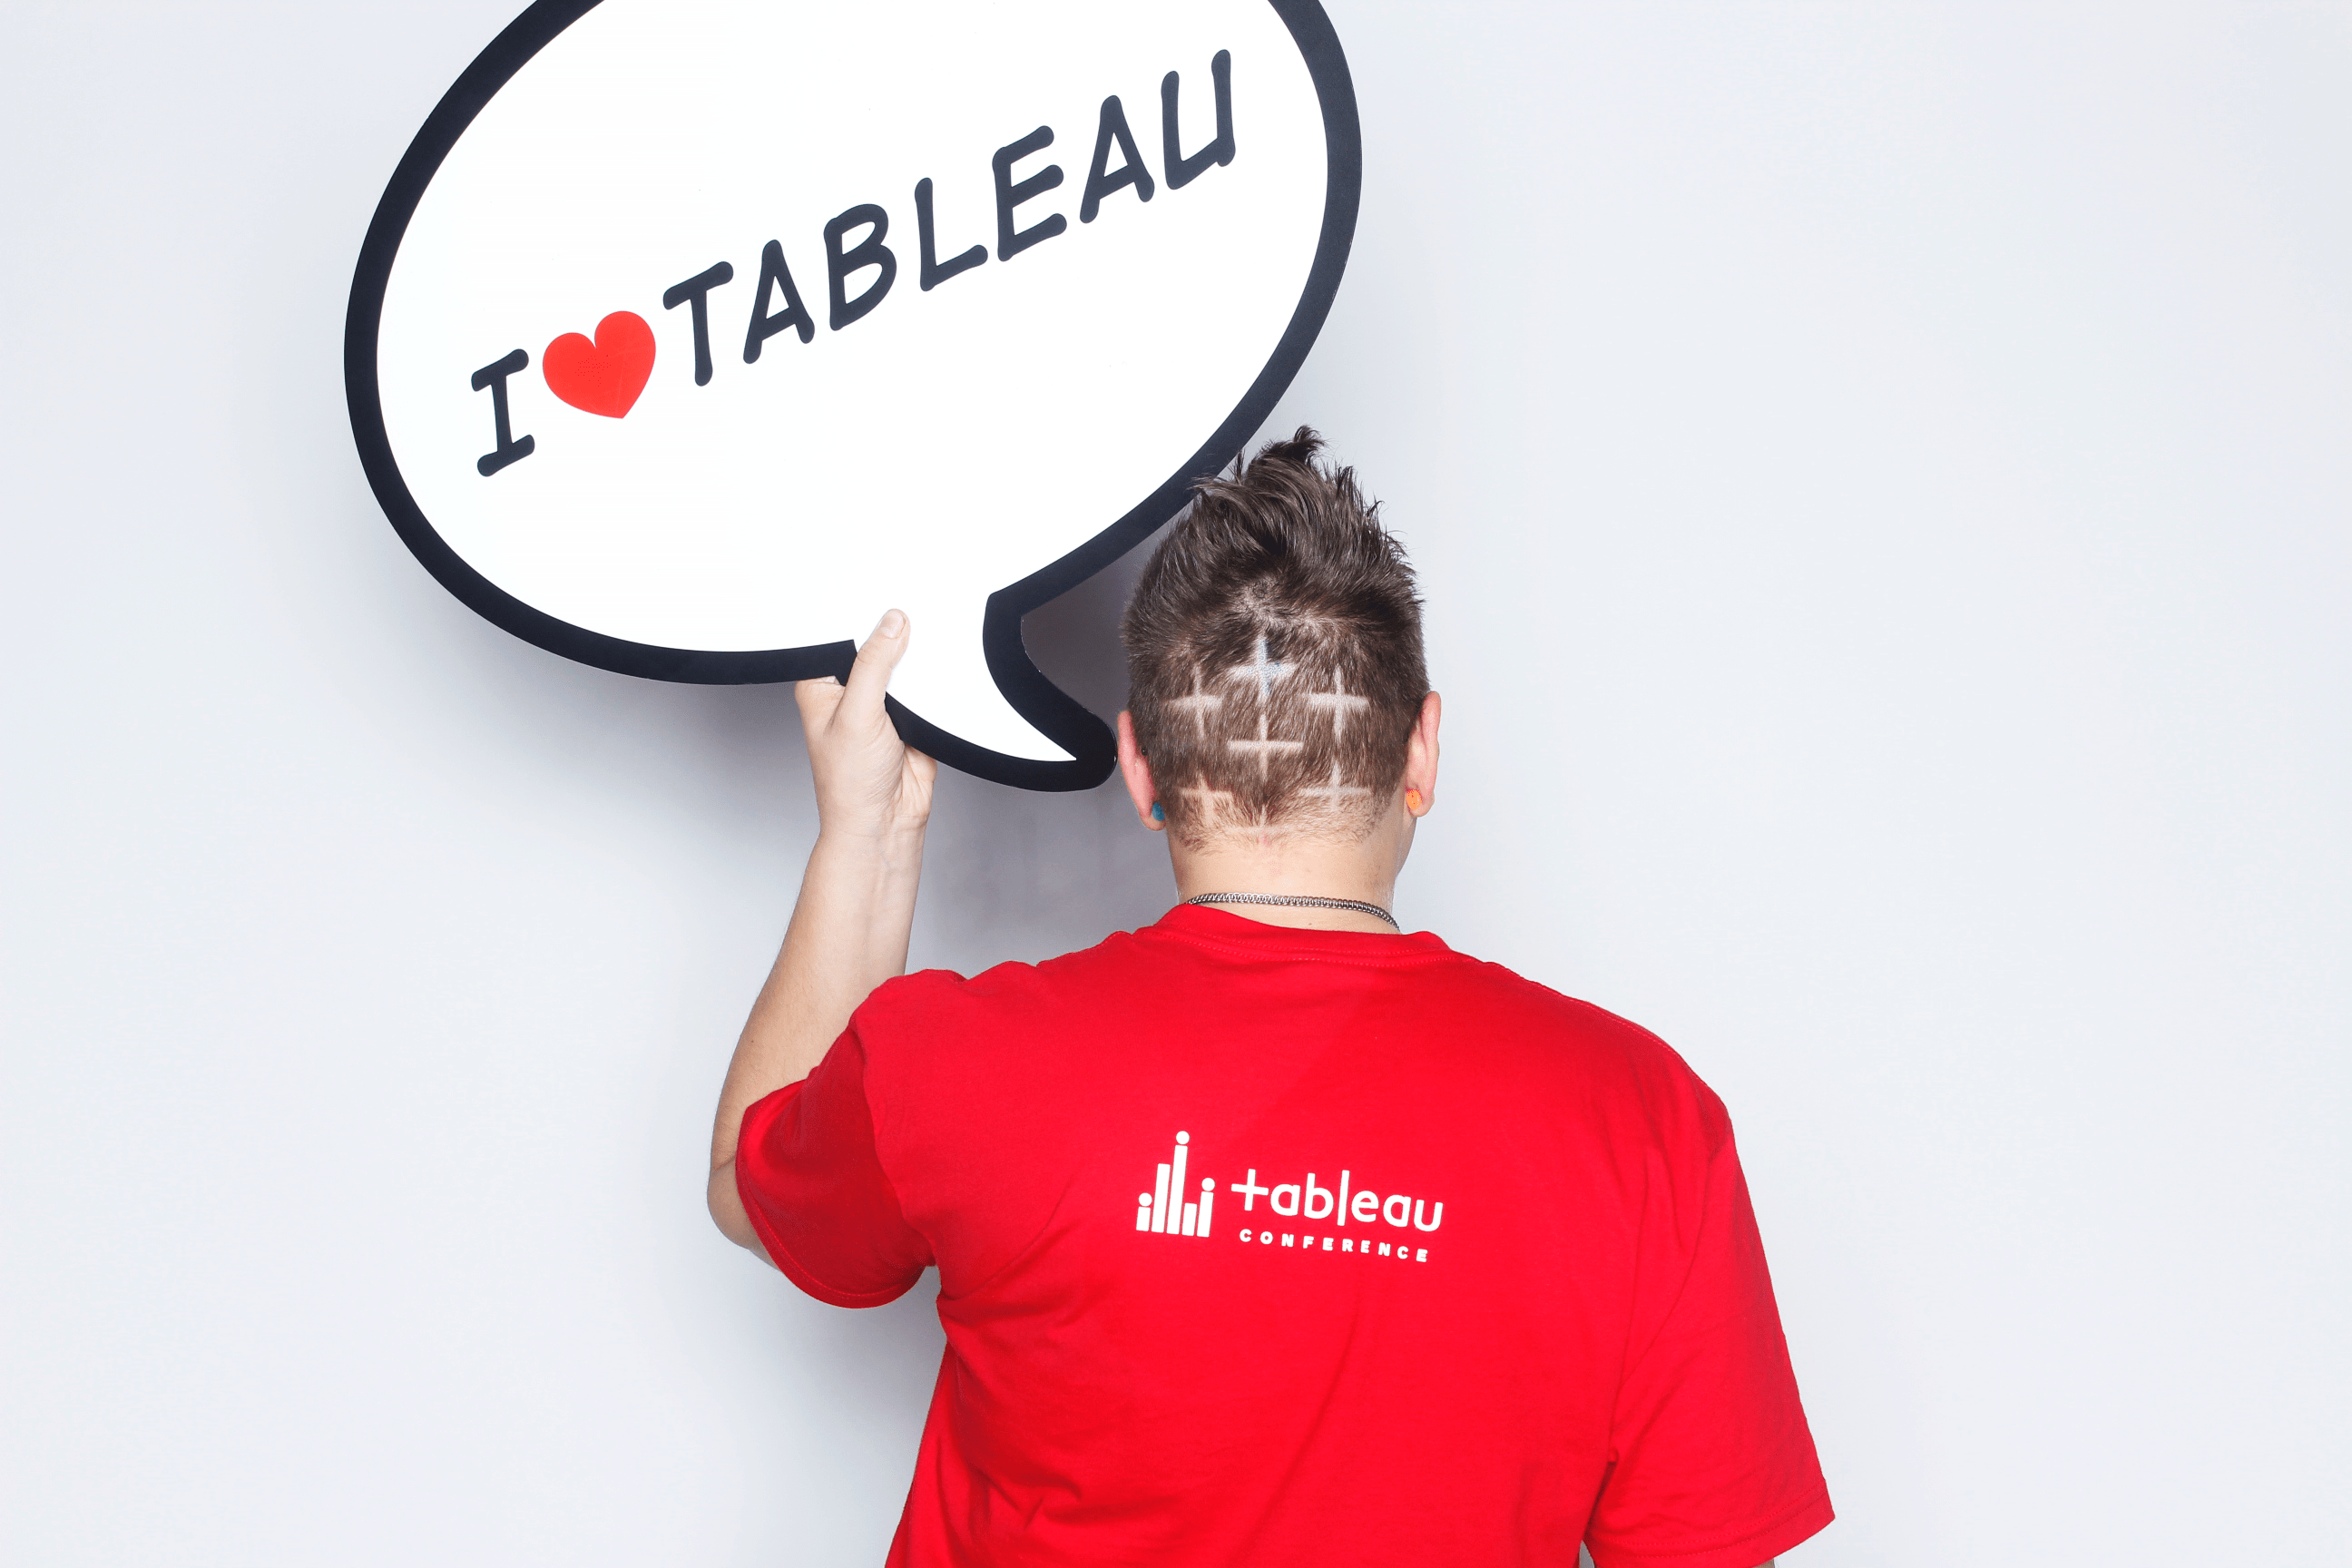 a tableau champion s guide to migrating workbooks and data sources